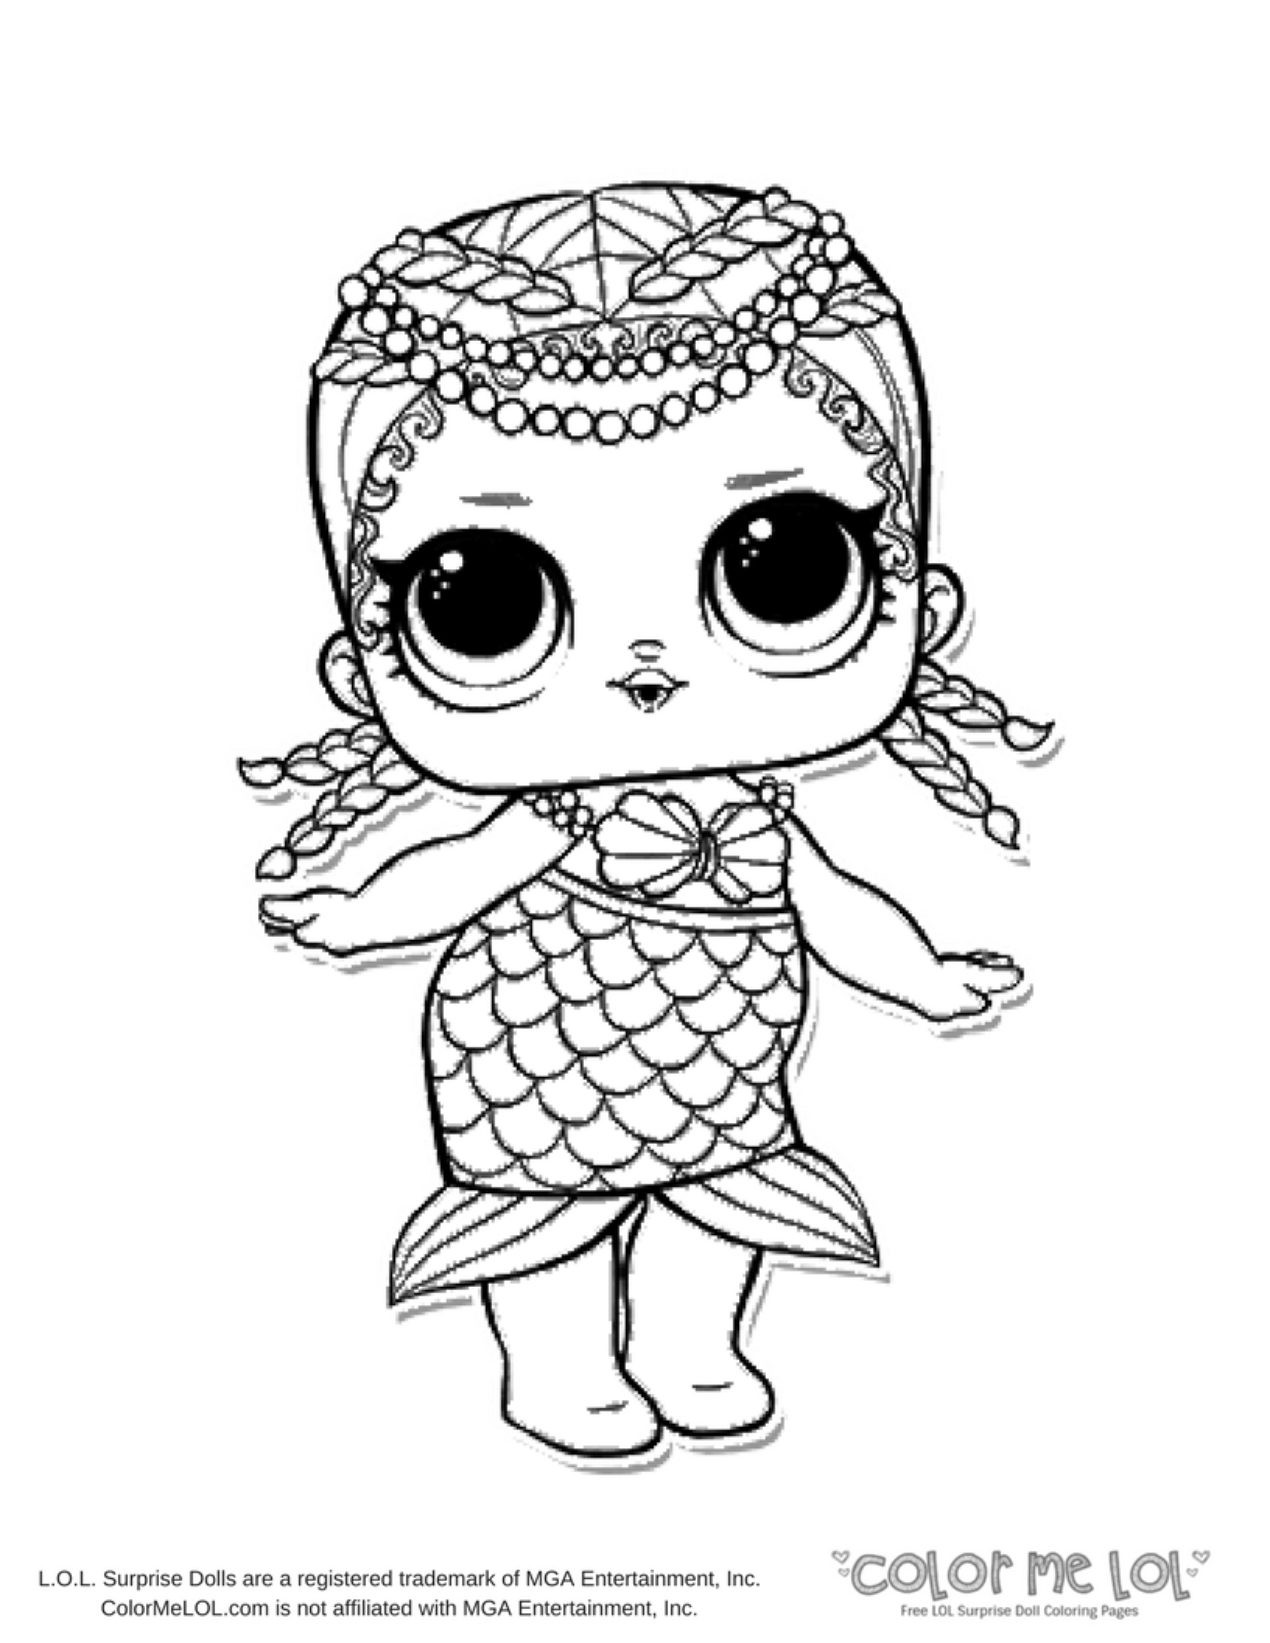 1270x1643 I Love You Baby Coloring Pages New Free Printable Lol Surprise